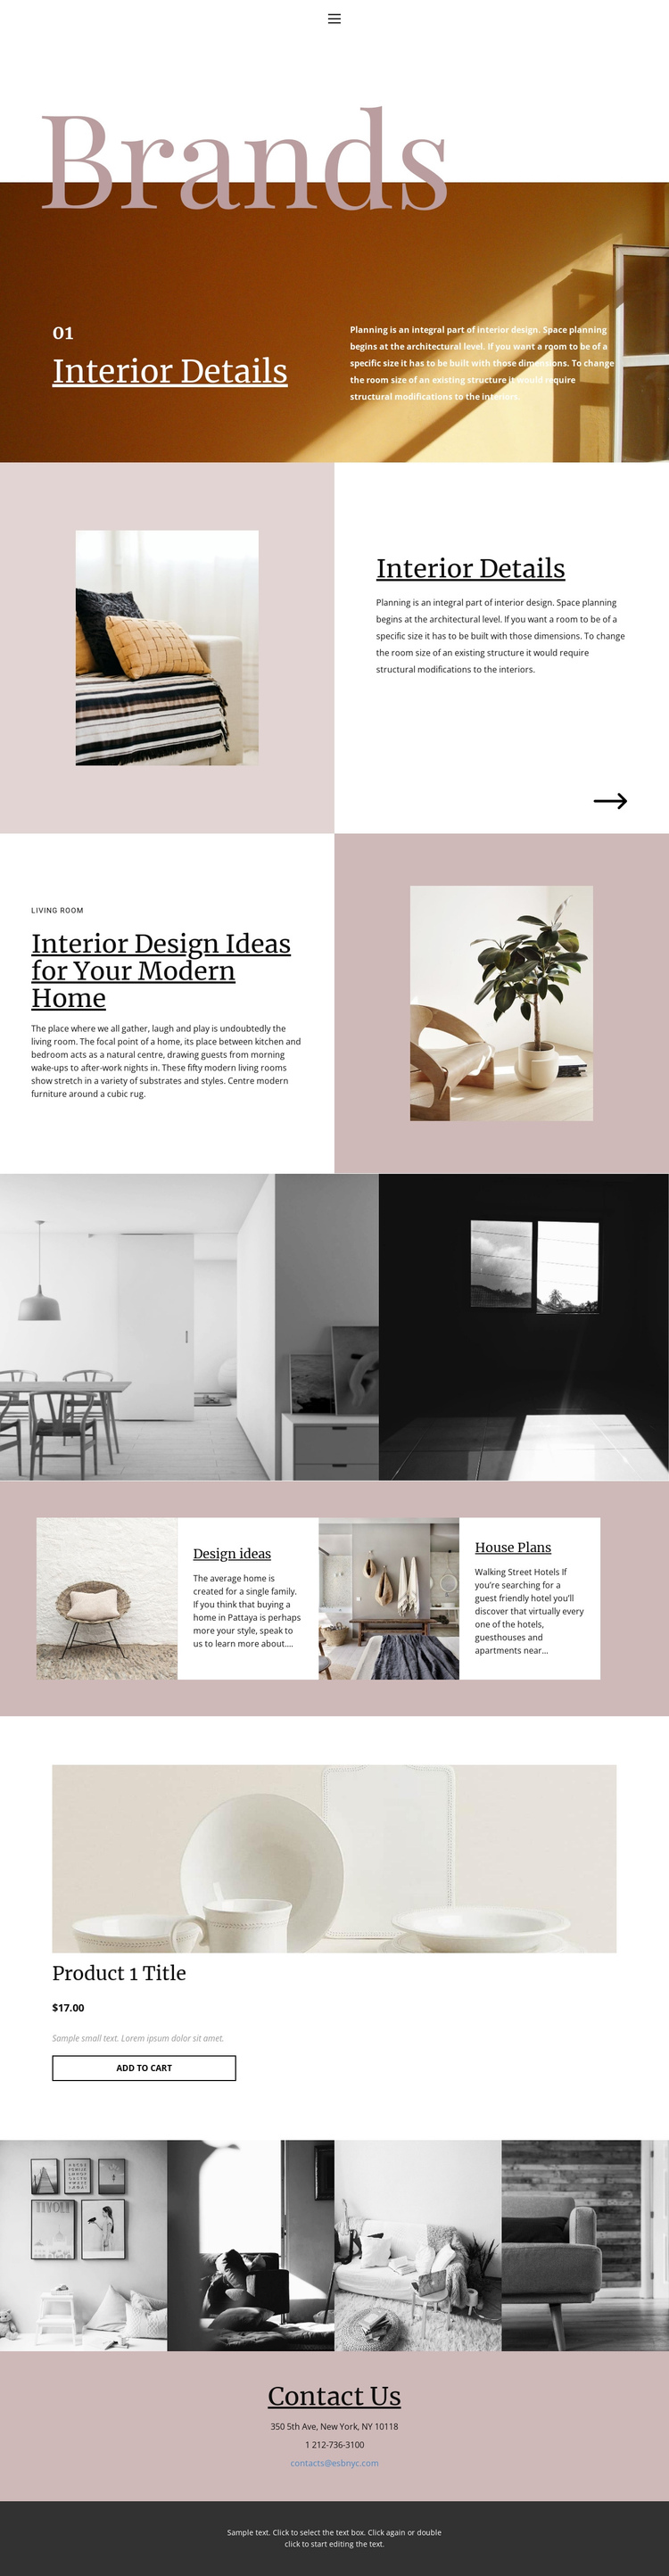 Interior details Website Builder Software